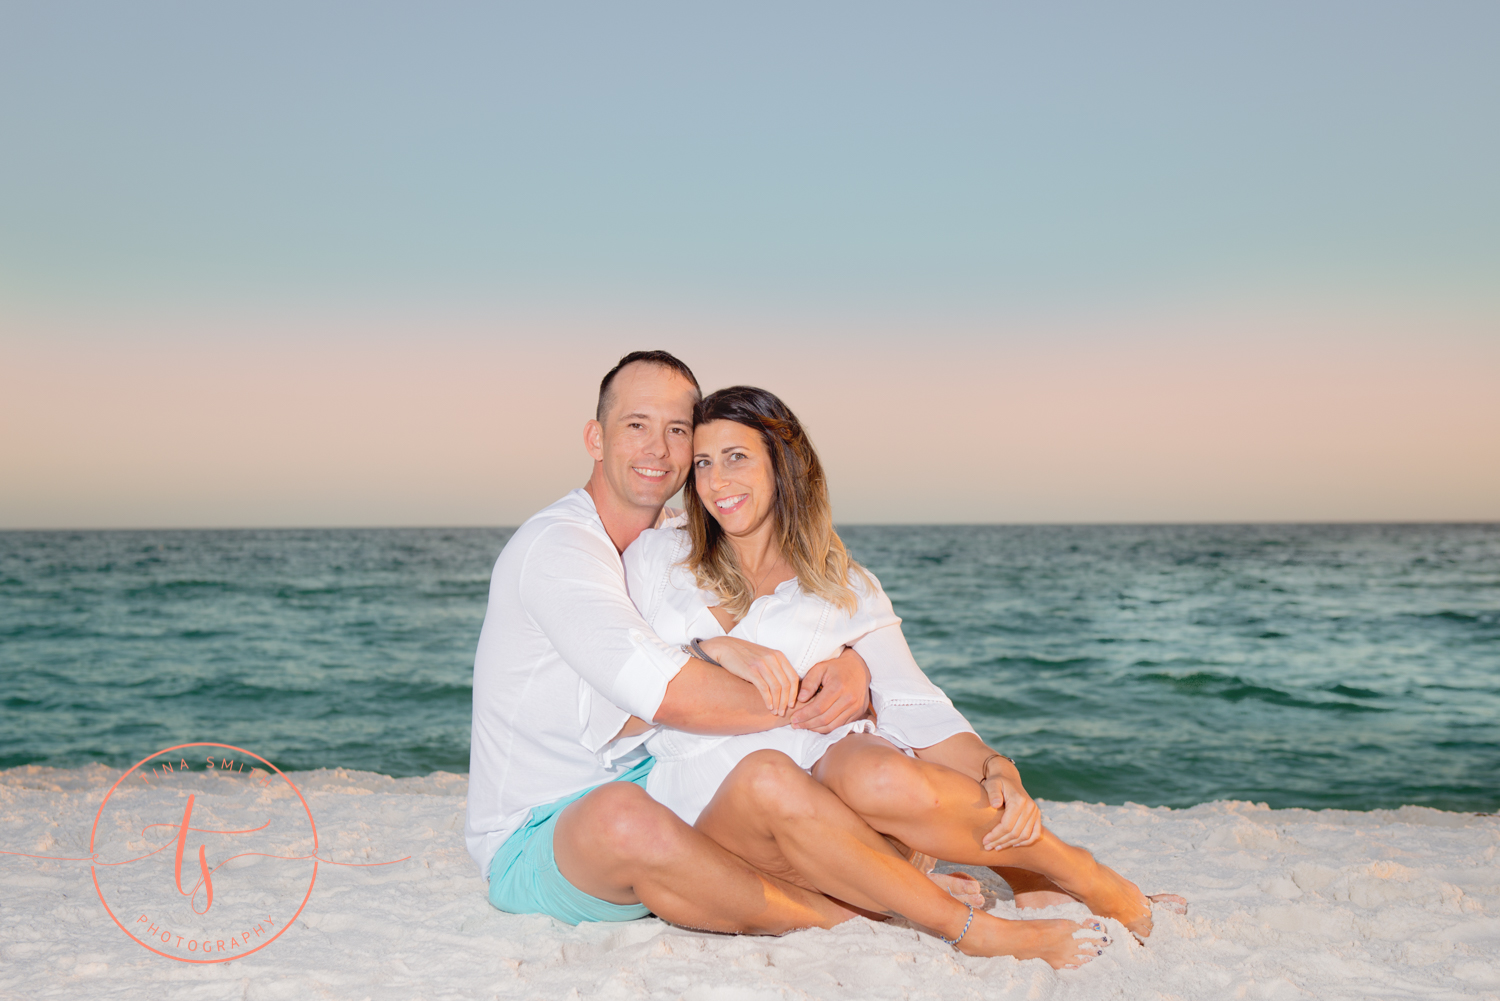 couple sitting on beach smiling for photography